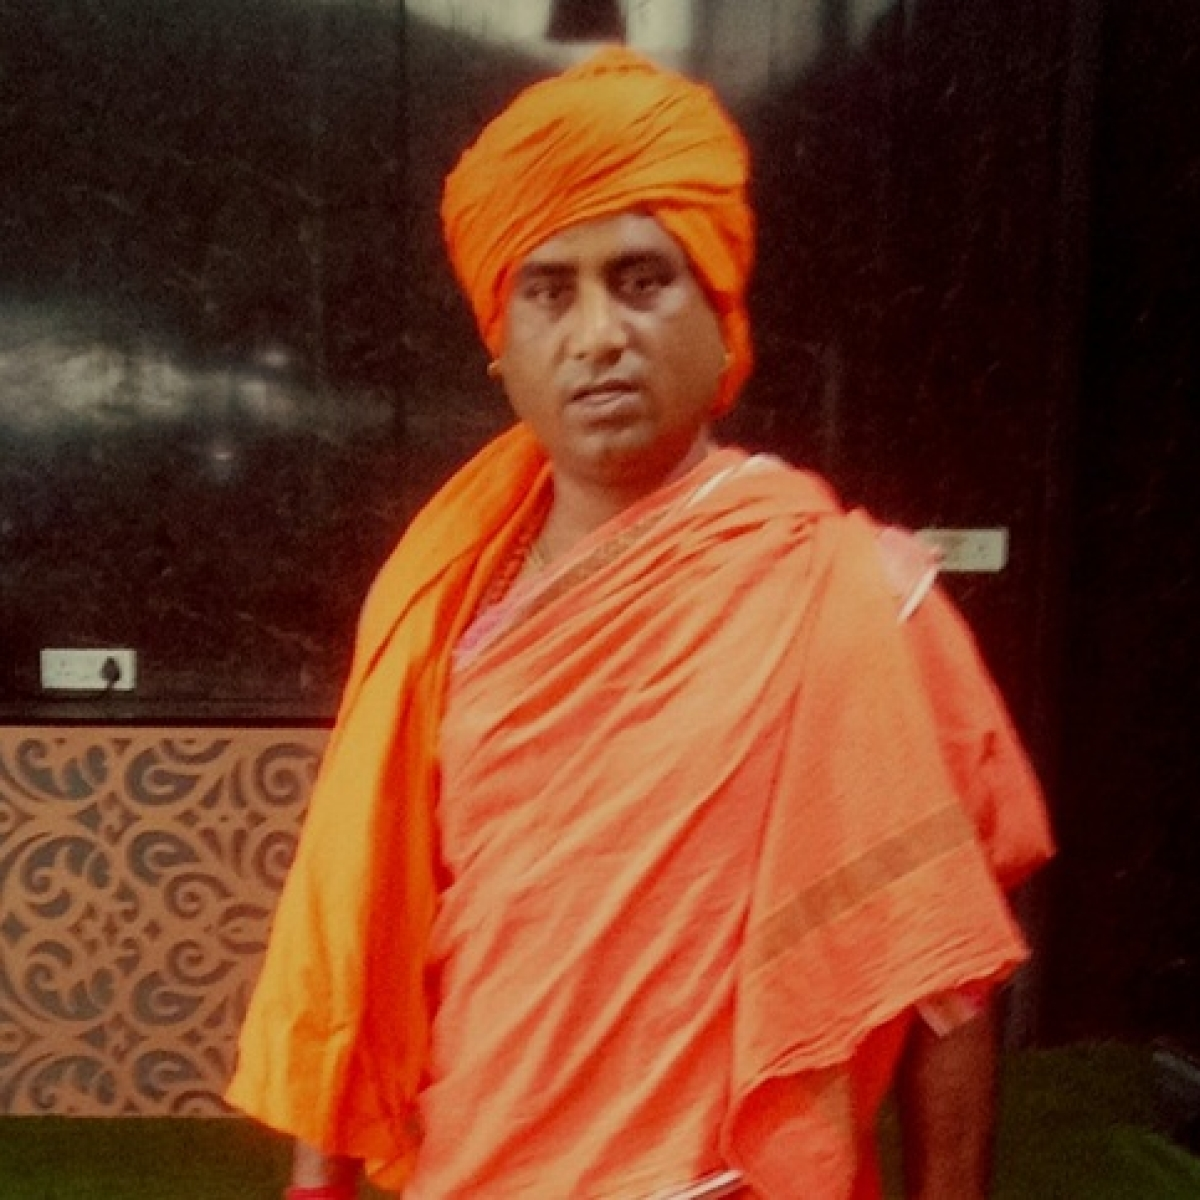 Who is Ranjeet Bachchan? Vishwa Hindu Mahasabha leader who was shot dead while out on morning walk